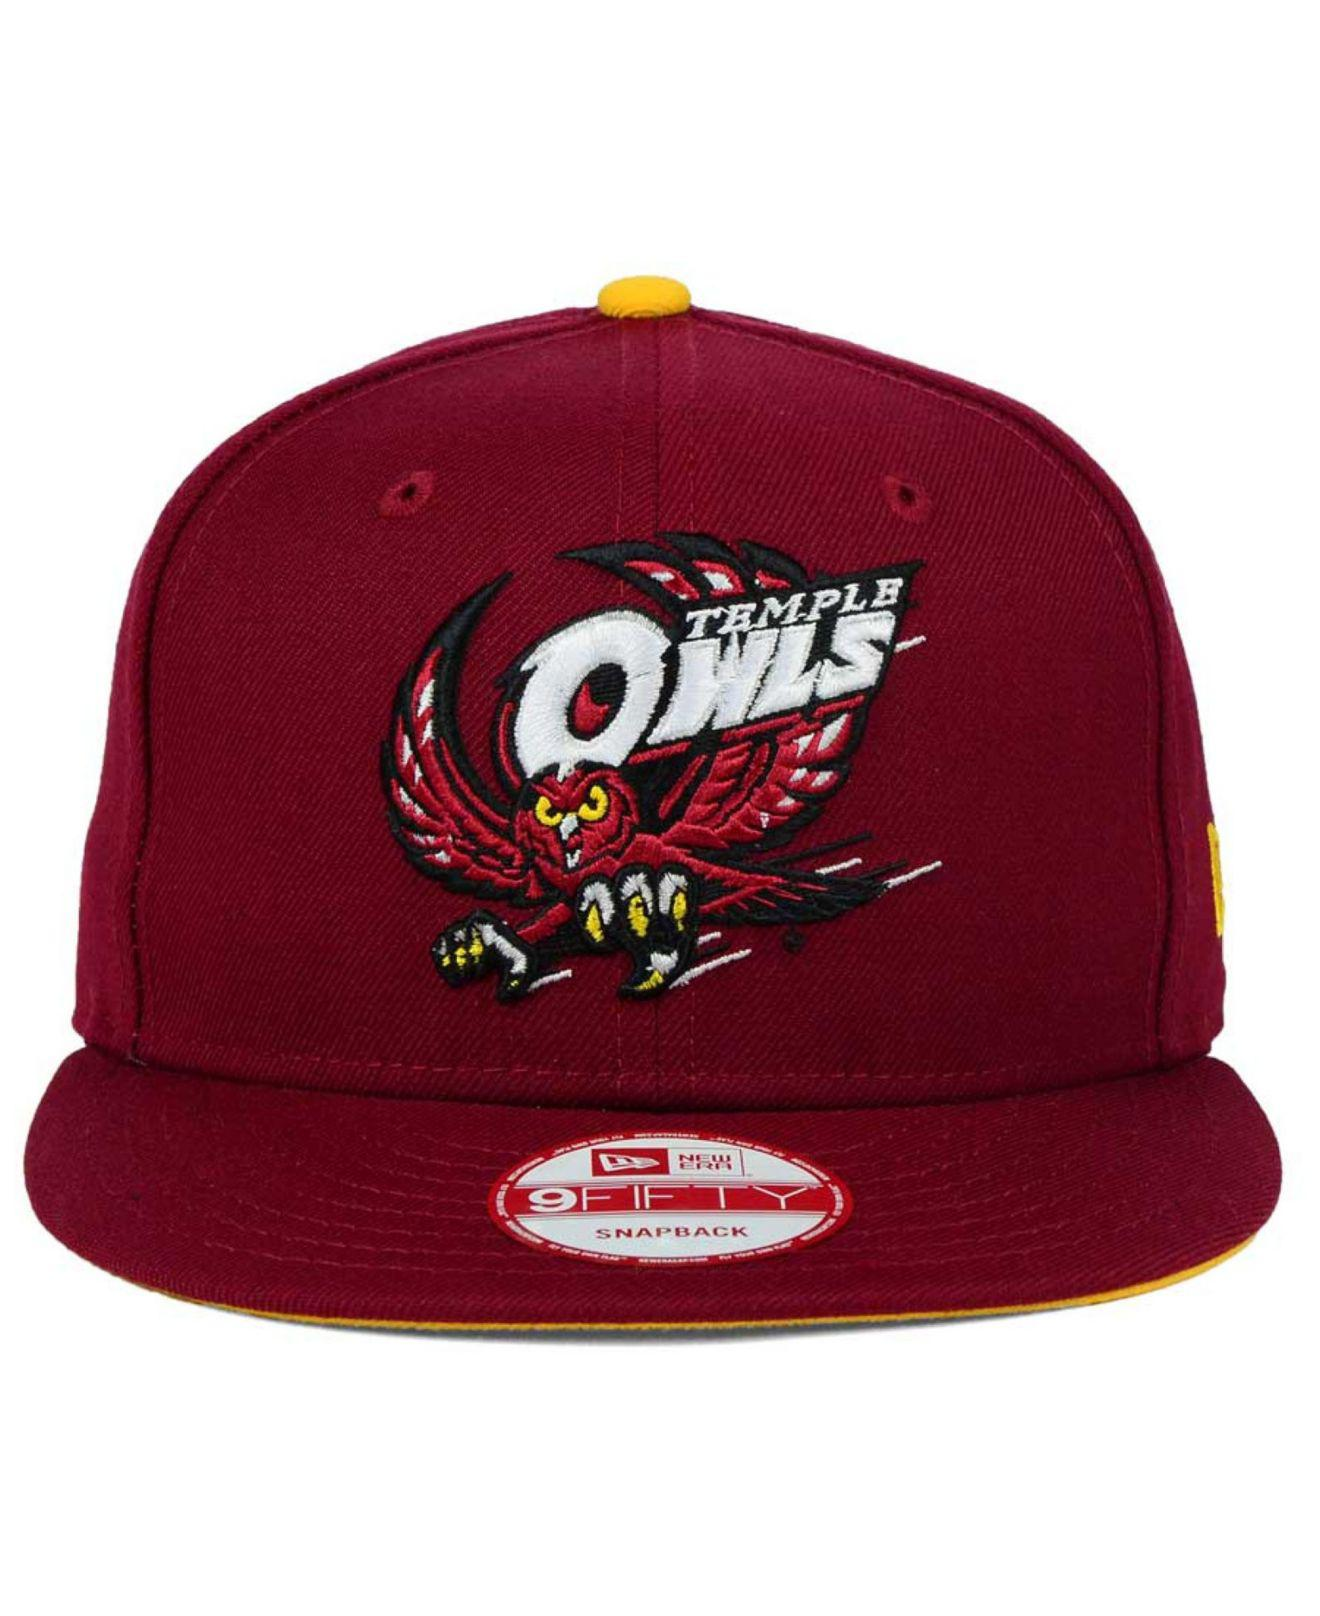 info for 6c8ba 66773 ... hat 5d5af 7b47b  low price lyst ktz temple owls core 9fifty snapback cap  in red for men 79217 87e1c